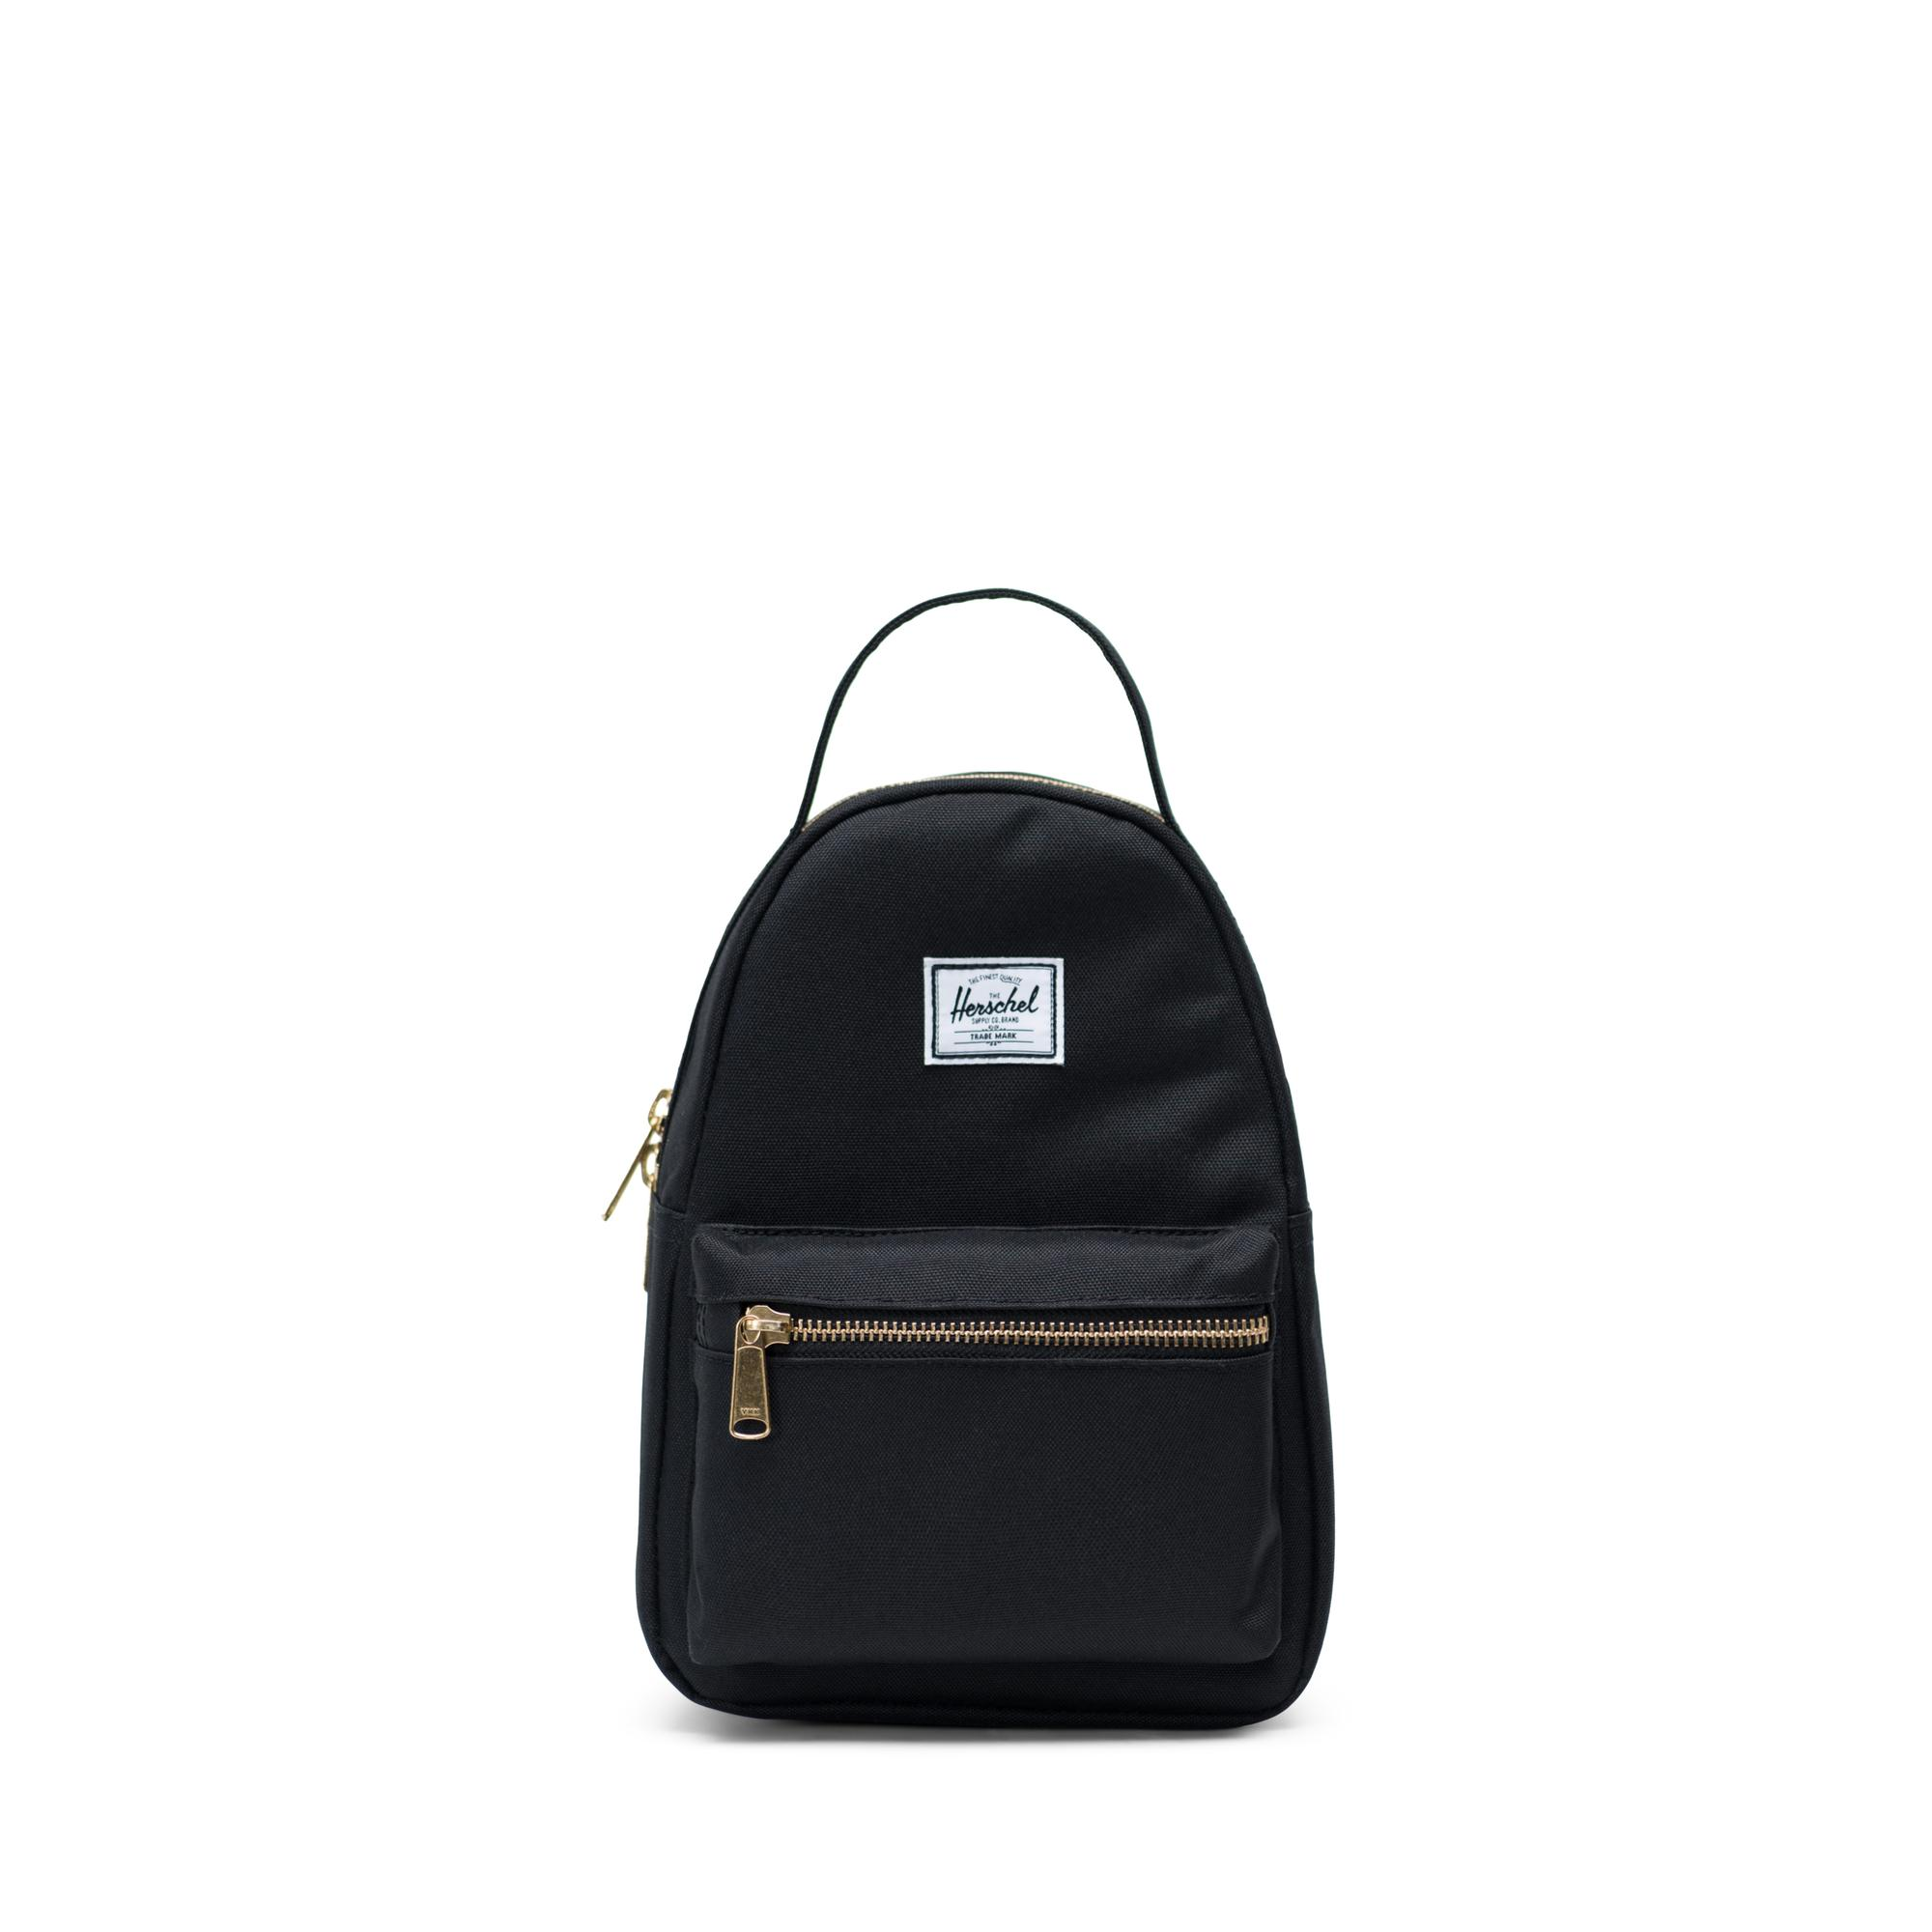 f5baf97ed9a Nova Backpack Mini